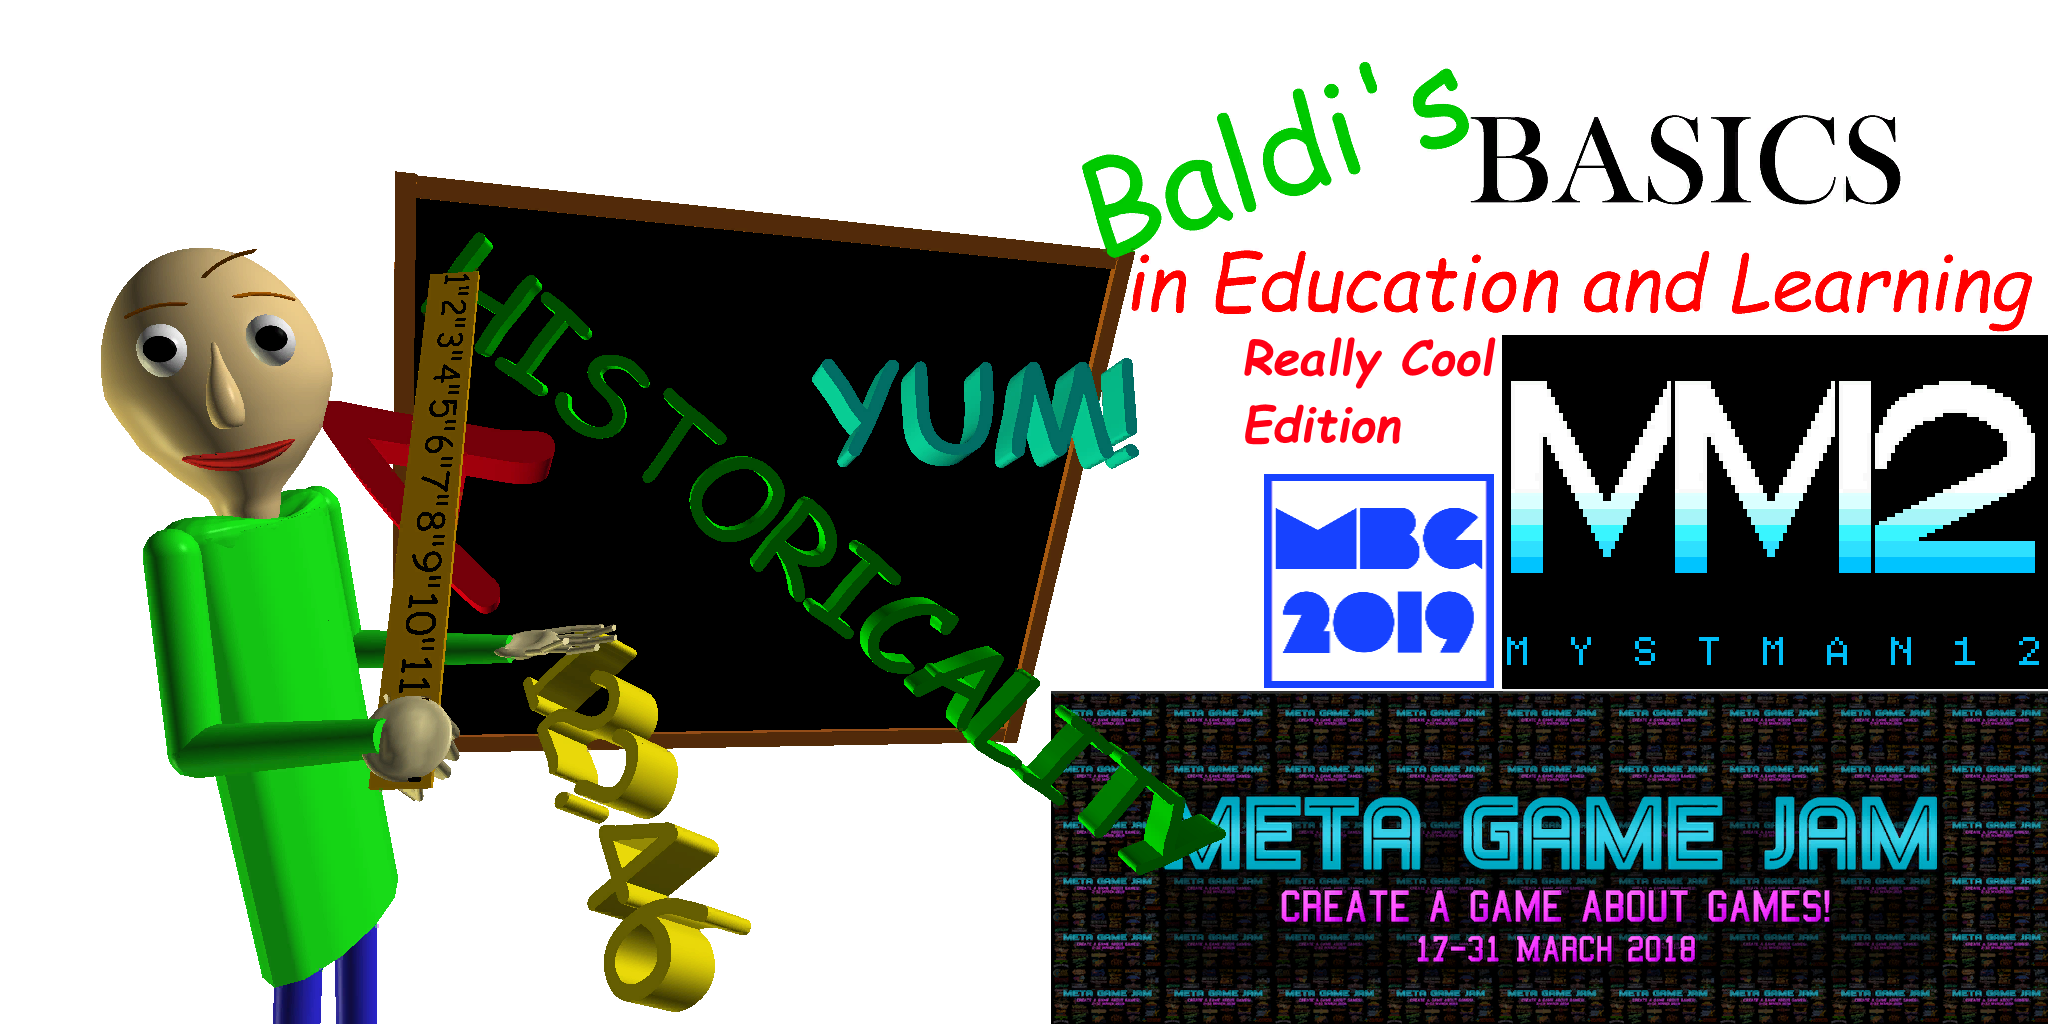 Baldi's Basics (Really Cool Edition - 1.4.1 Re-completion Update)